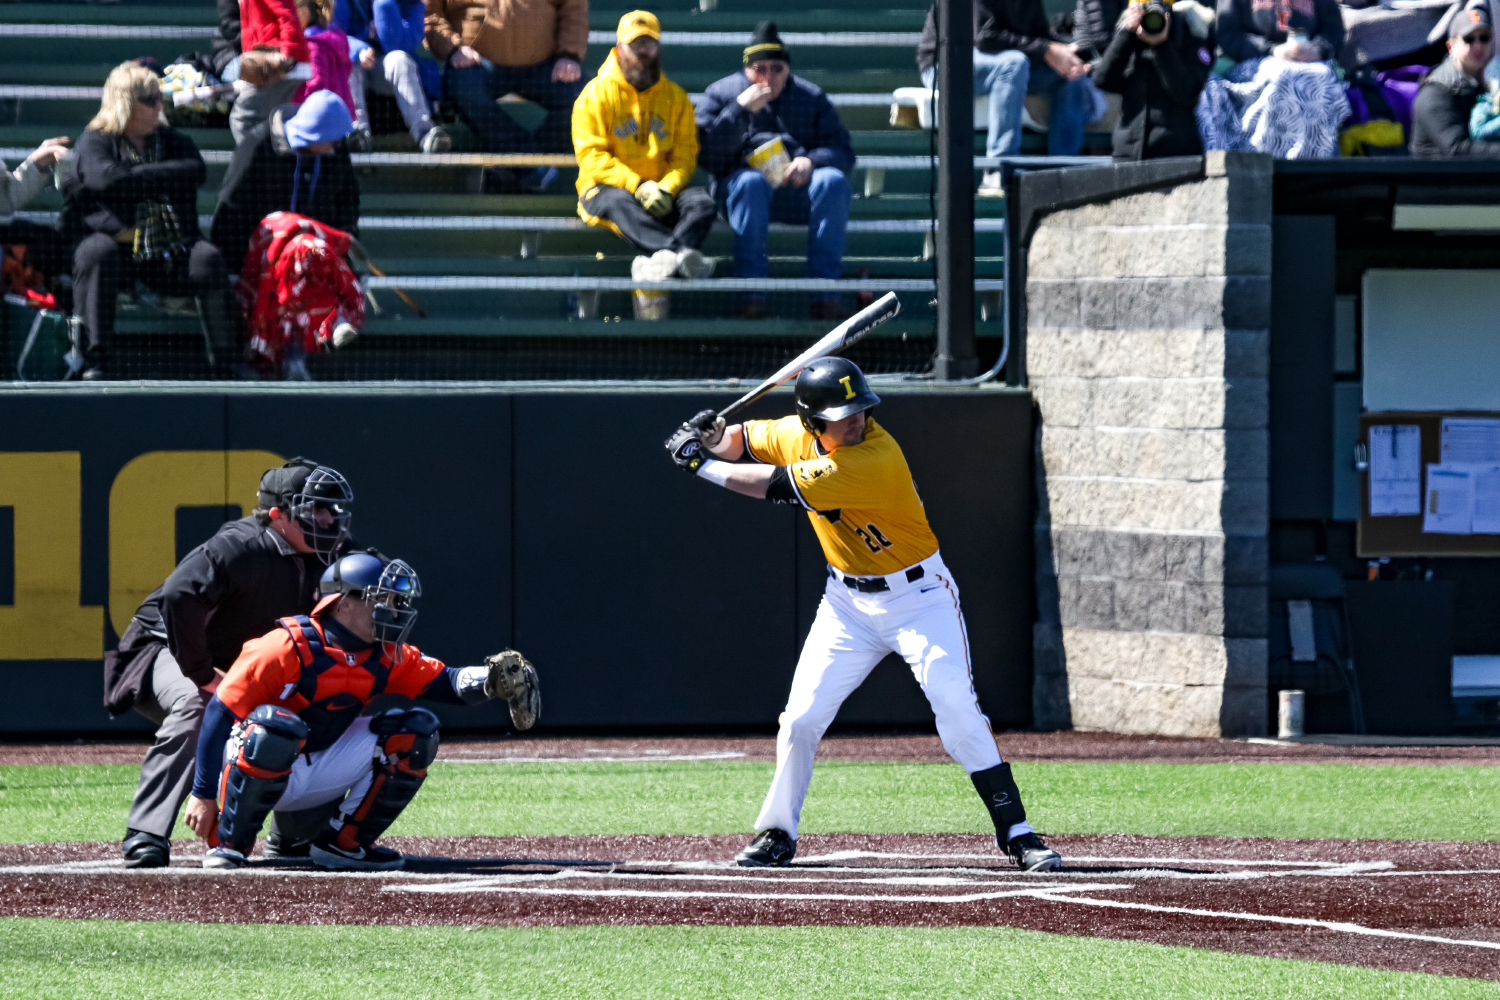 Iowa's Chris Whelan stands in the batters box during a baseball game against the University of Illinois on Sunday, Mar. 31, 2019. The Hawkeyes defeated the Illini 3-1.